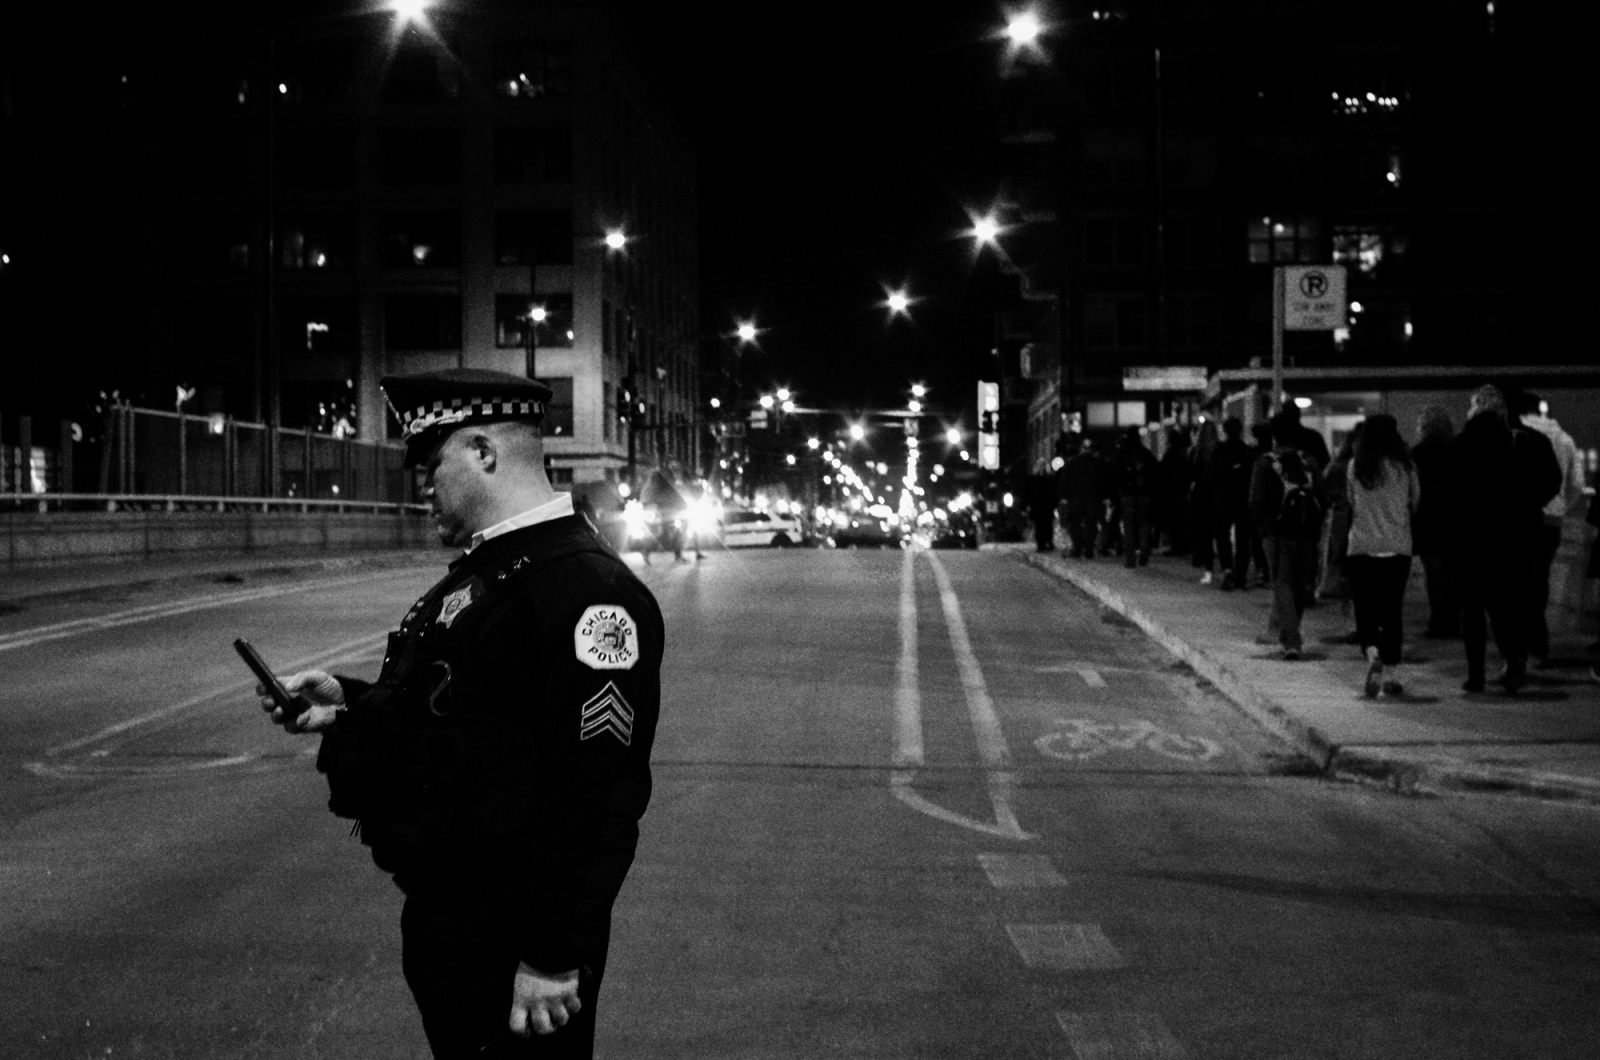 End of Donald Trump Rally and Protest, Chicago 2016